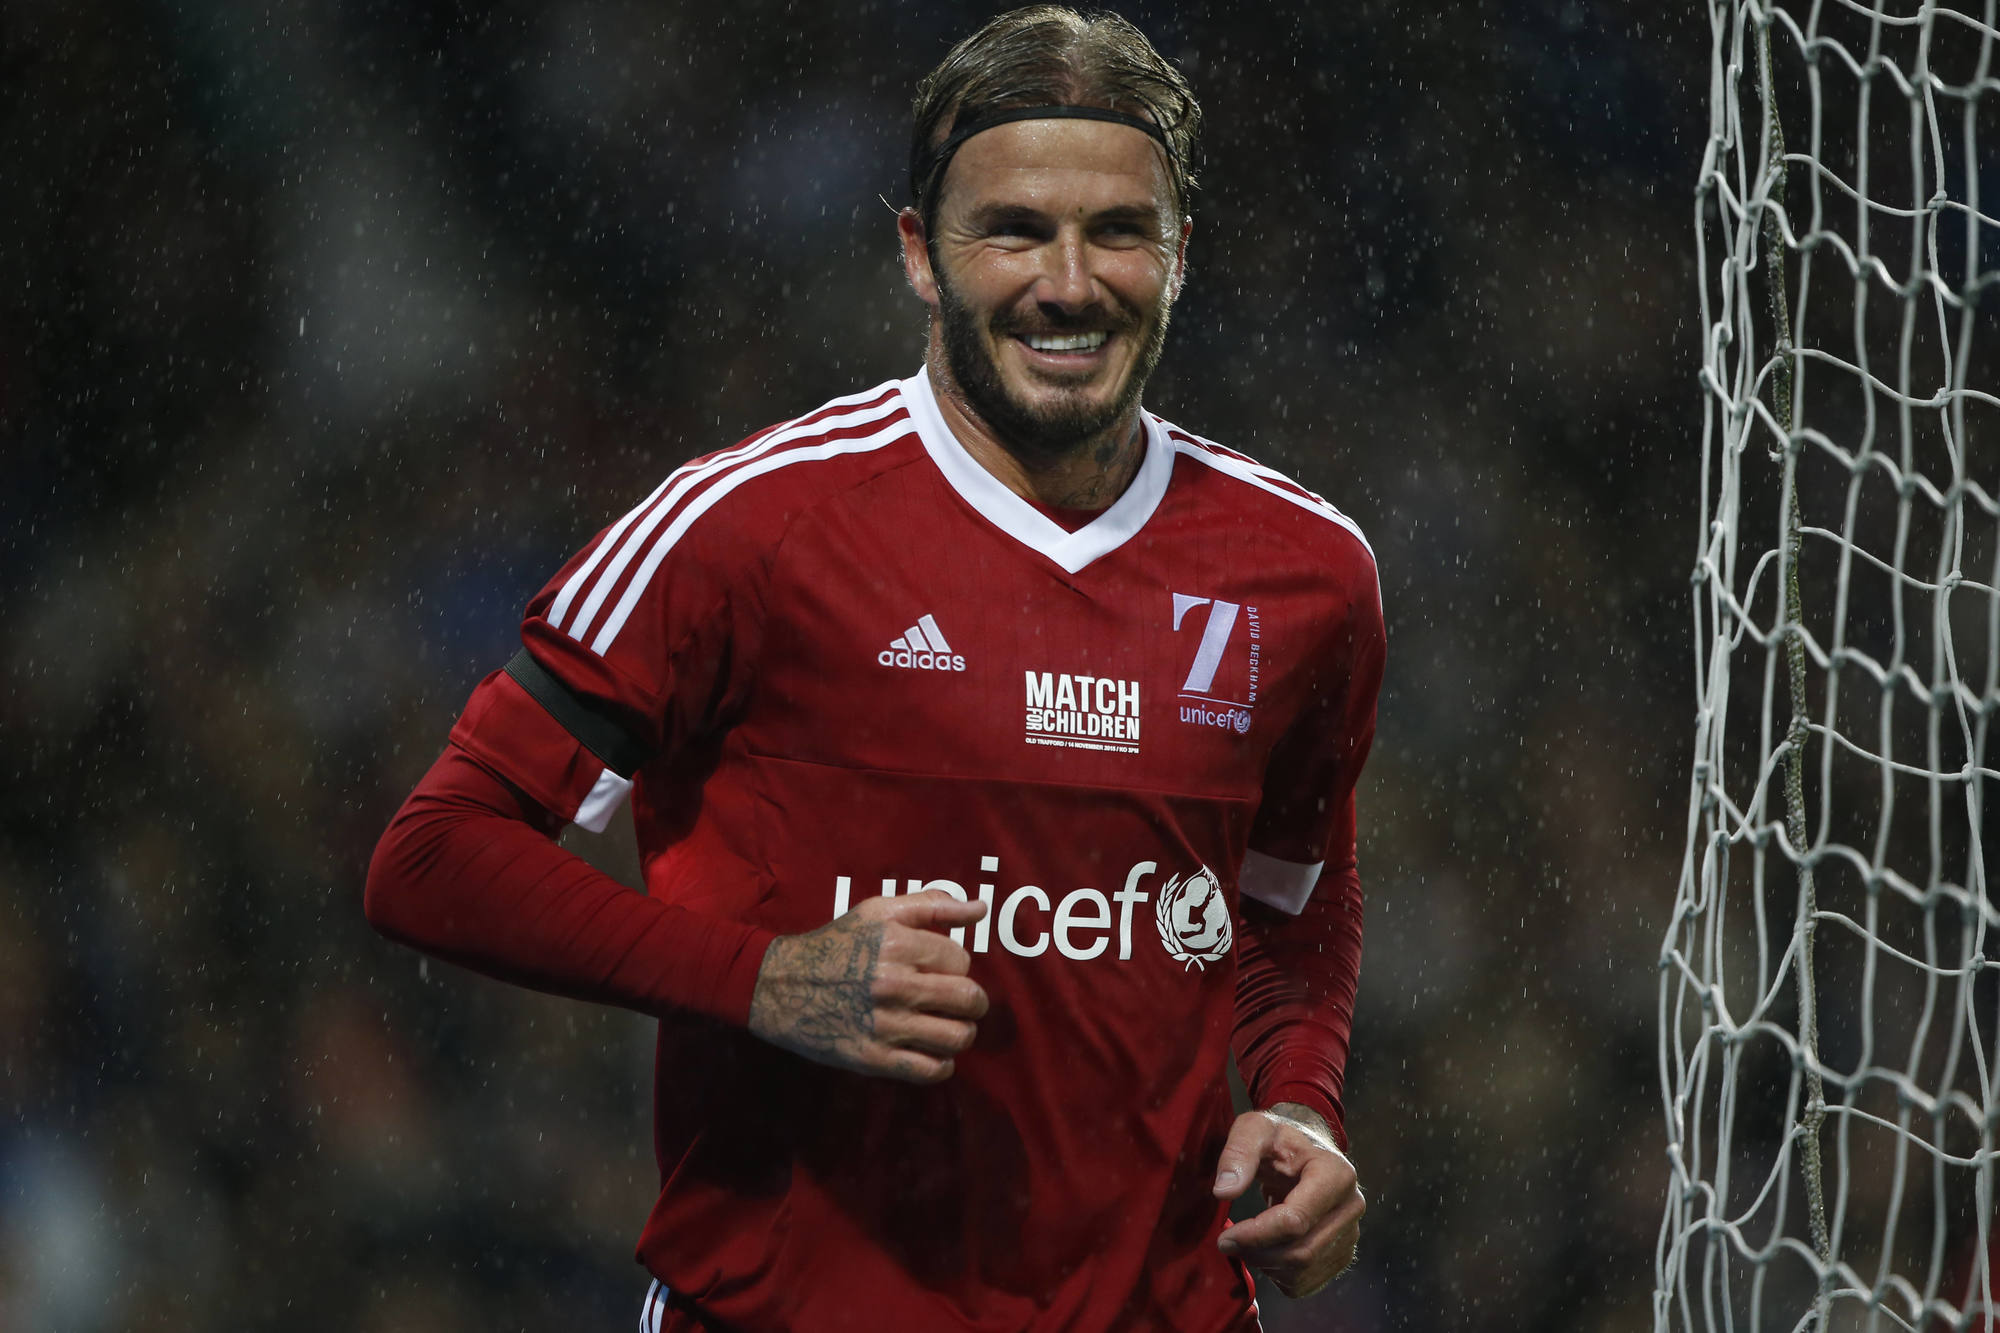 footballer hairstyles: close up shot of david beckham at the unicef charity football match with swept-back hairstyle, wearing red football top and smiling